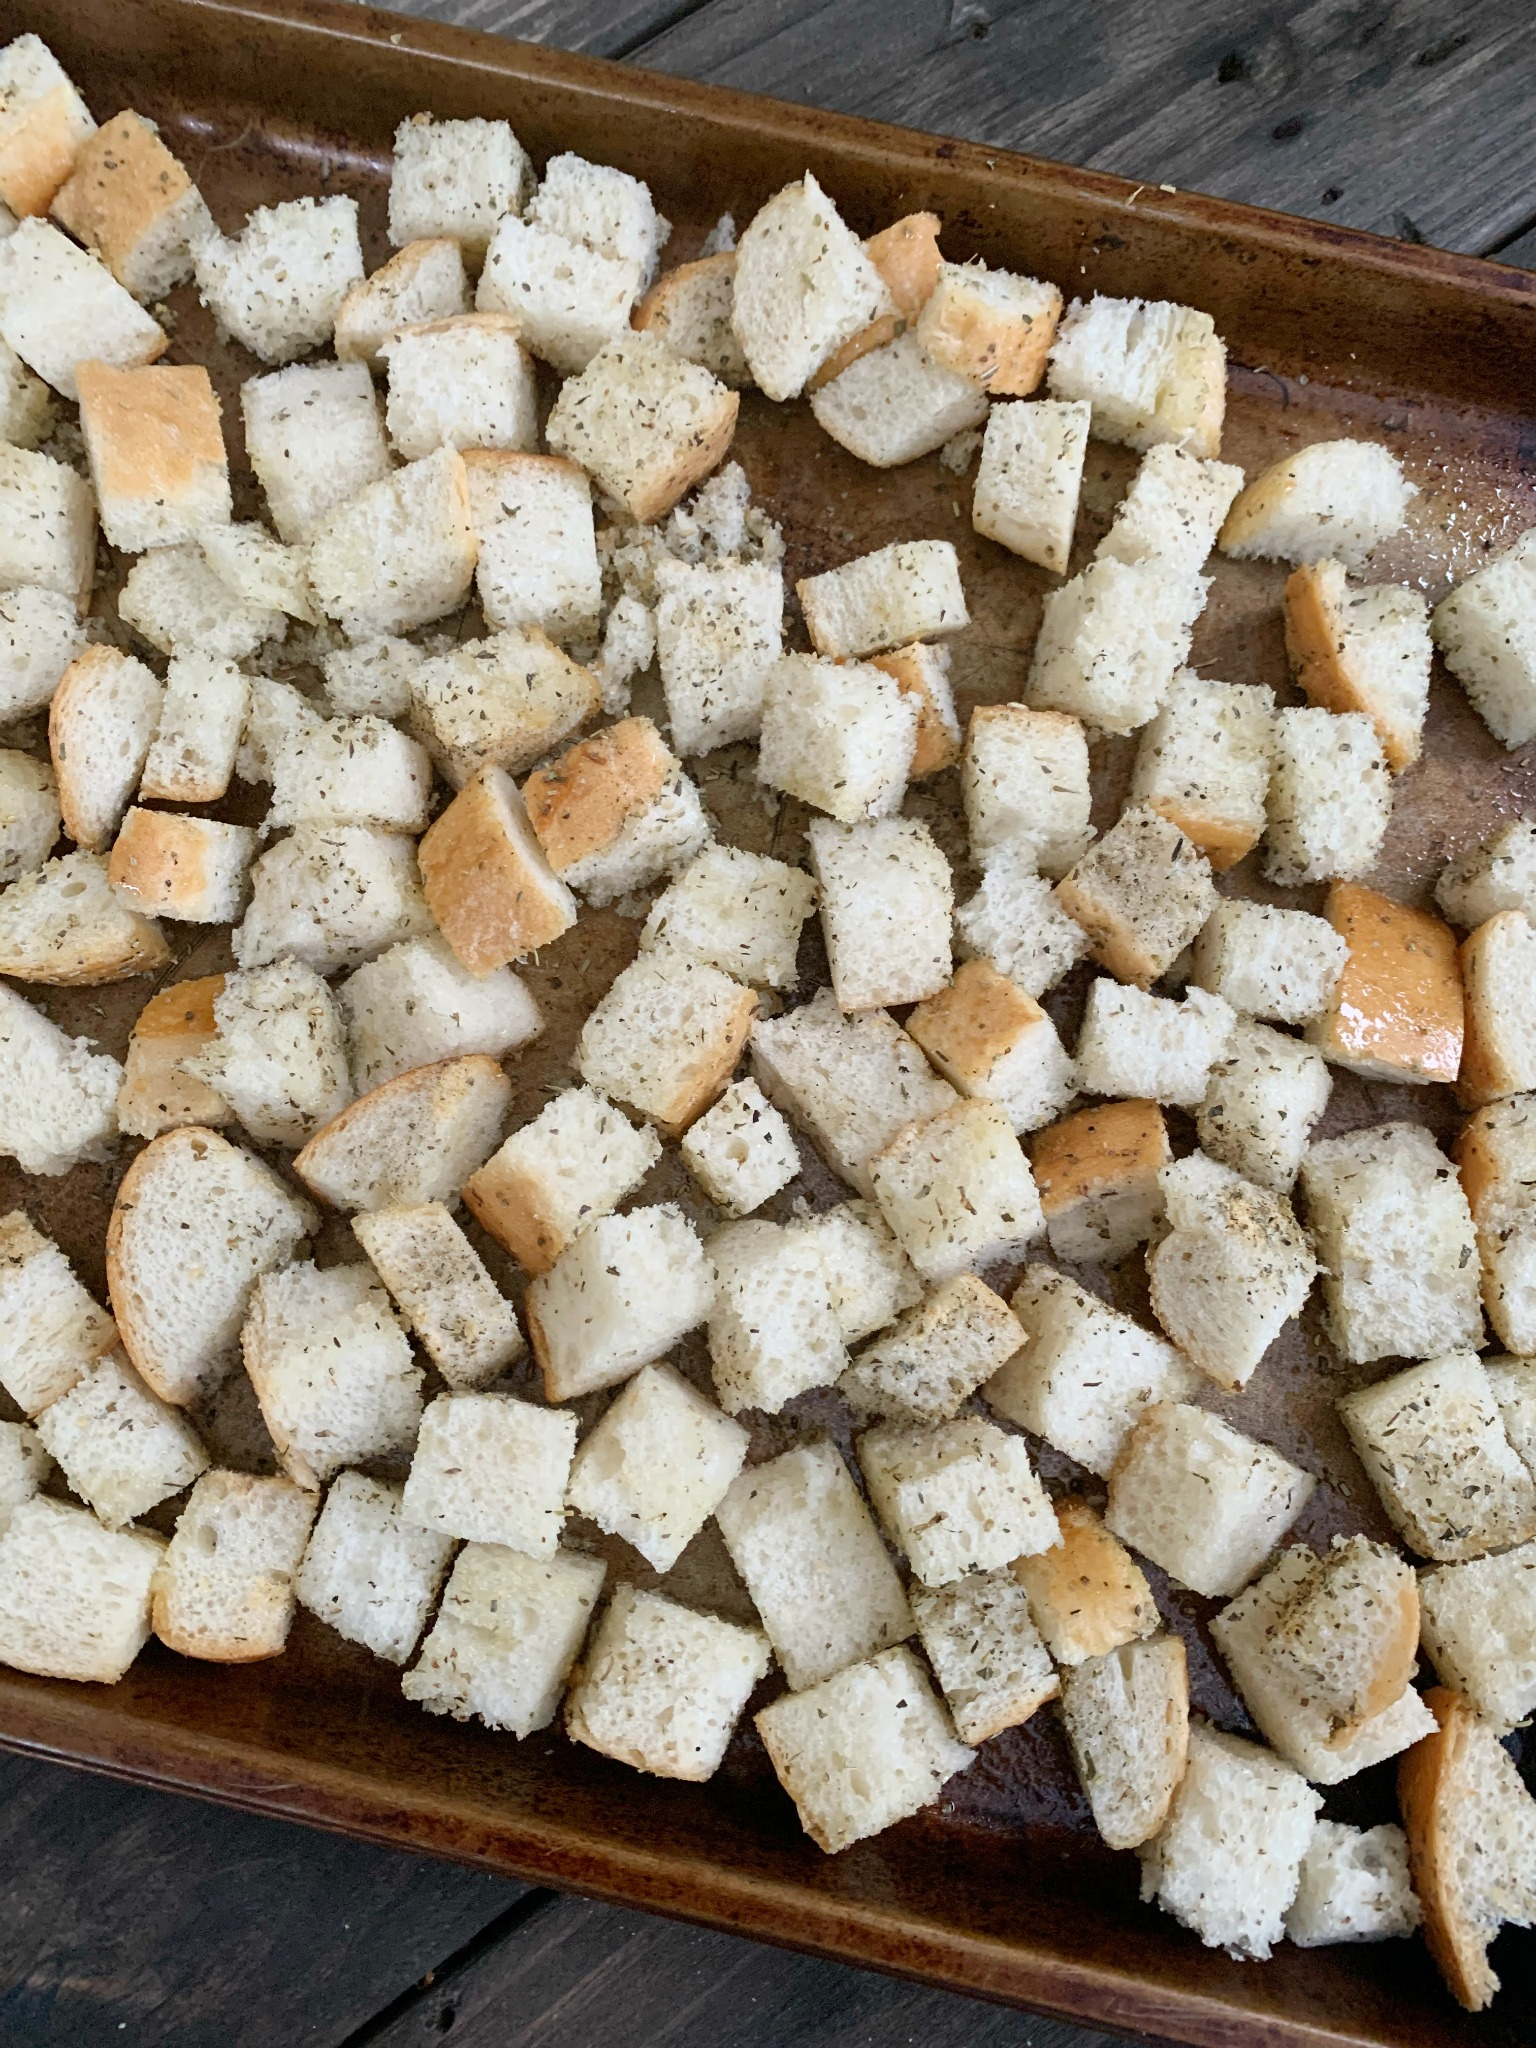 bread cubes before baking for croutons